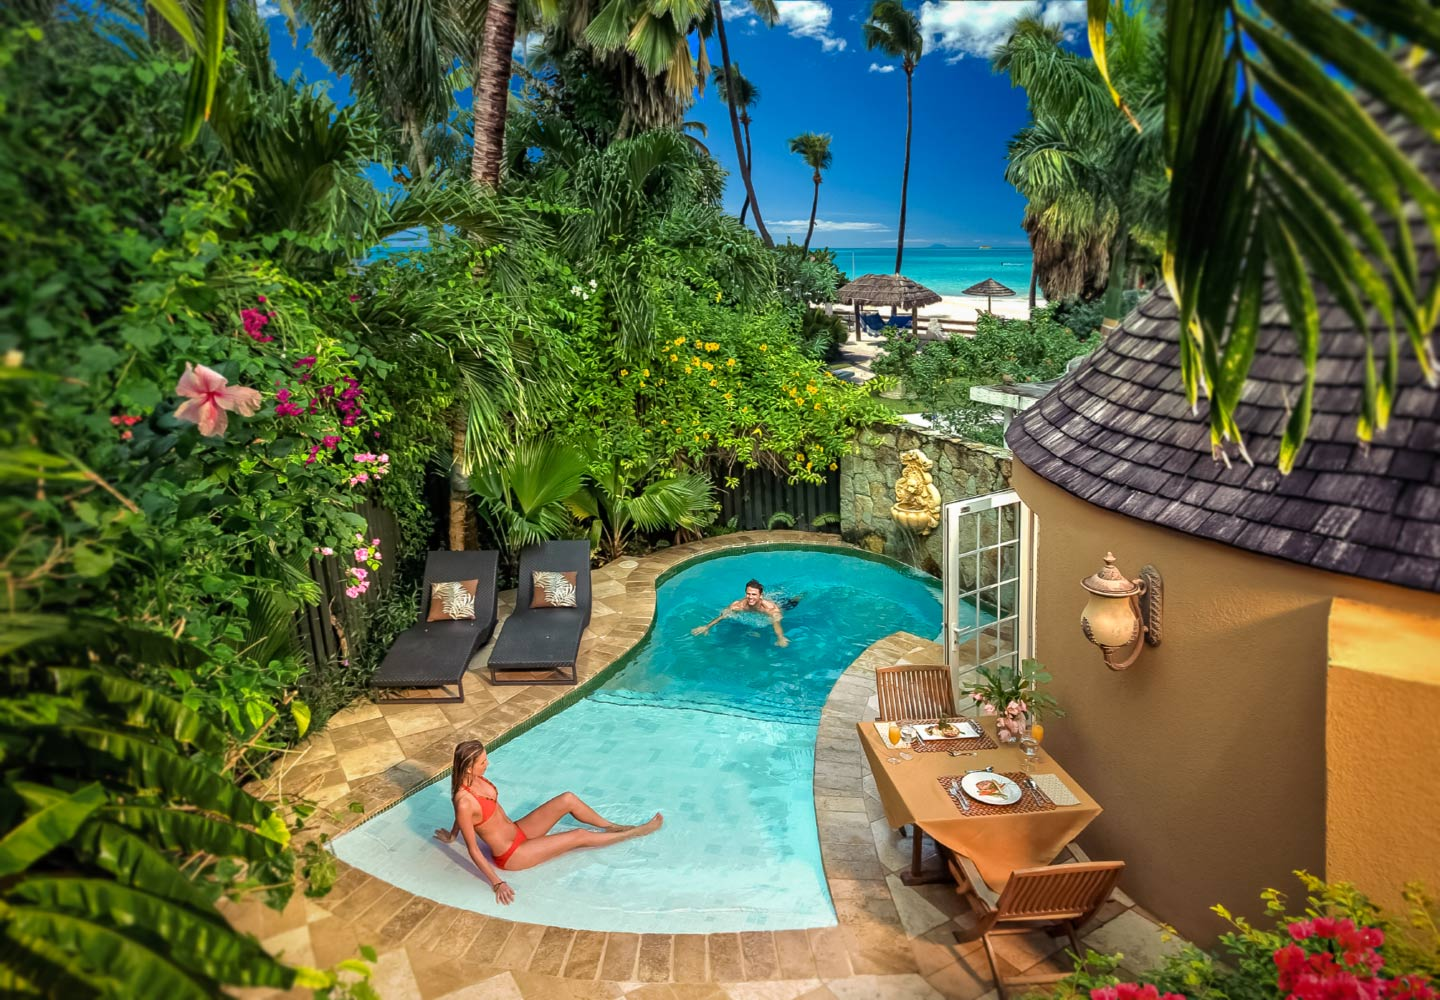 Sandals grande antigua resorts daily for All inclusive resorts for honeymoon